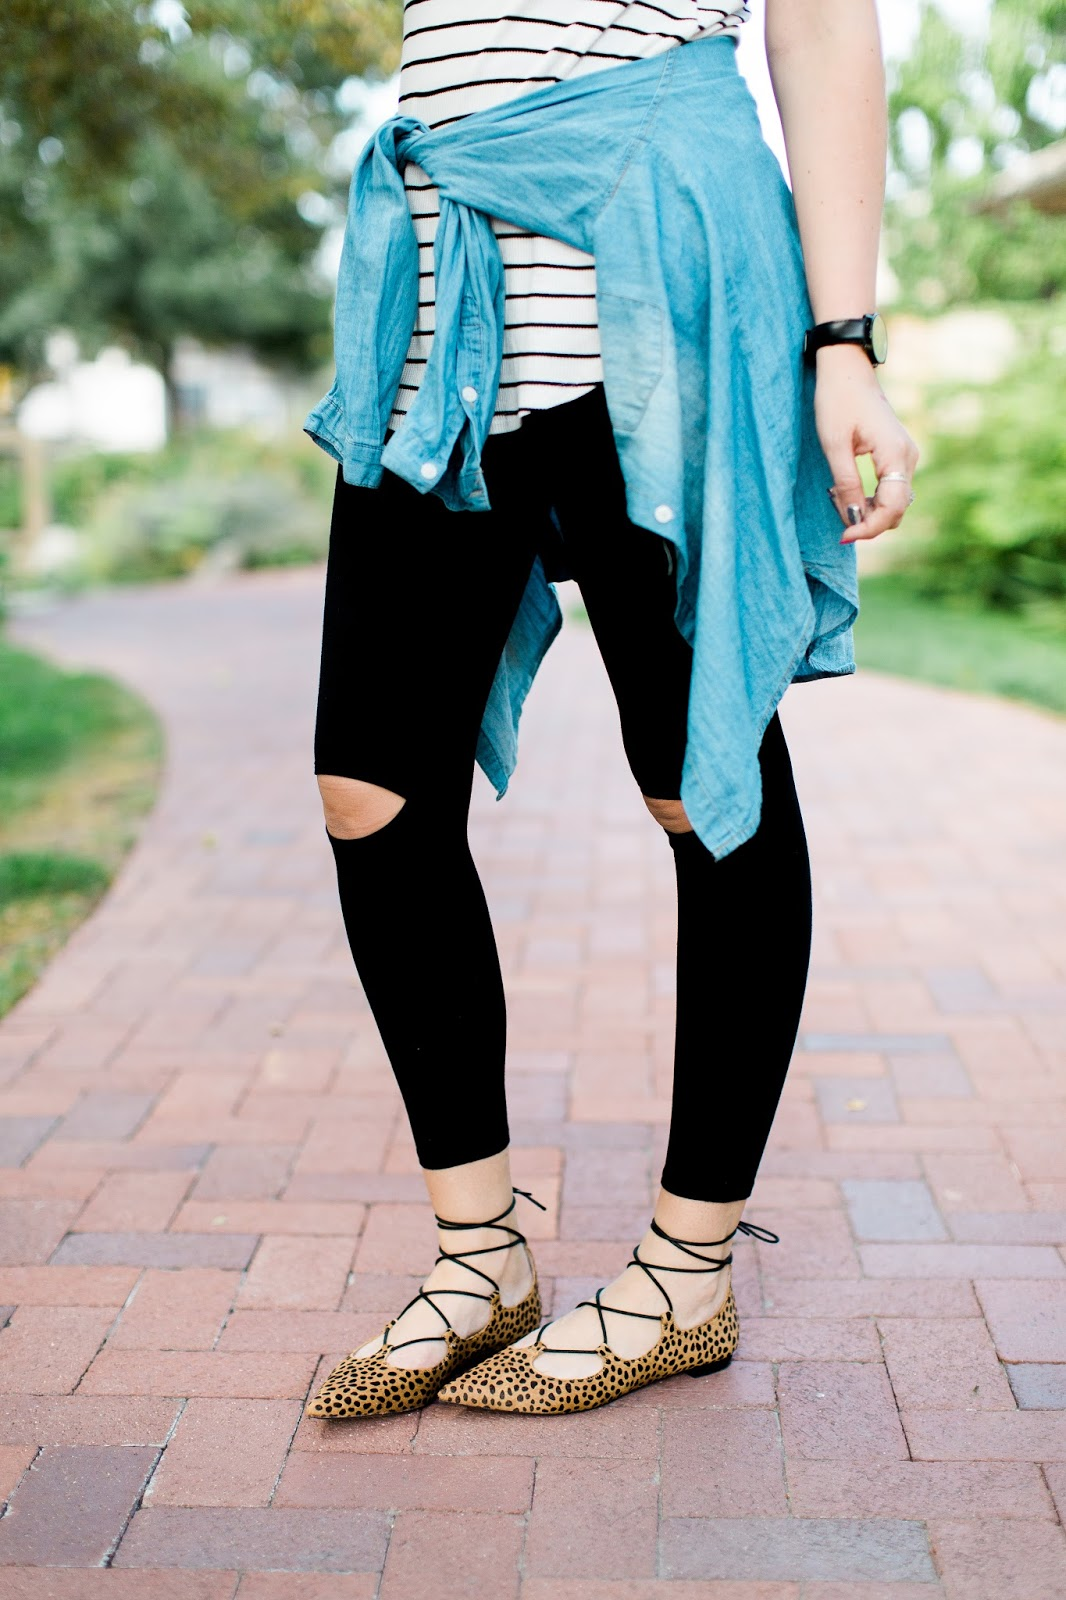 Black Leggings, Lace Up Leopard Flats, Casual Outfit